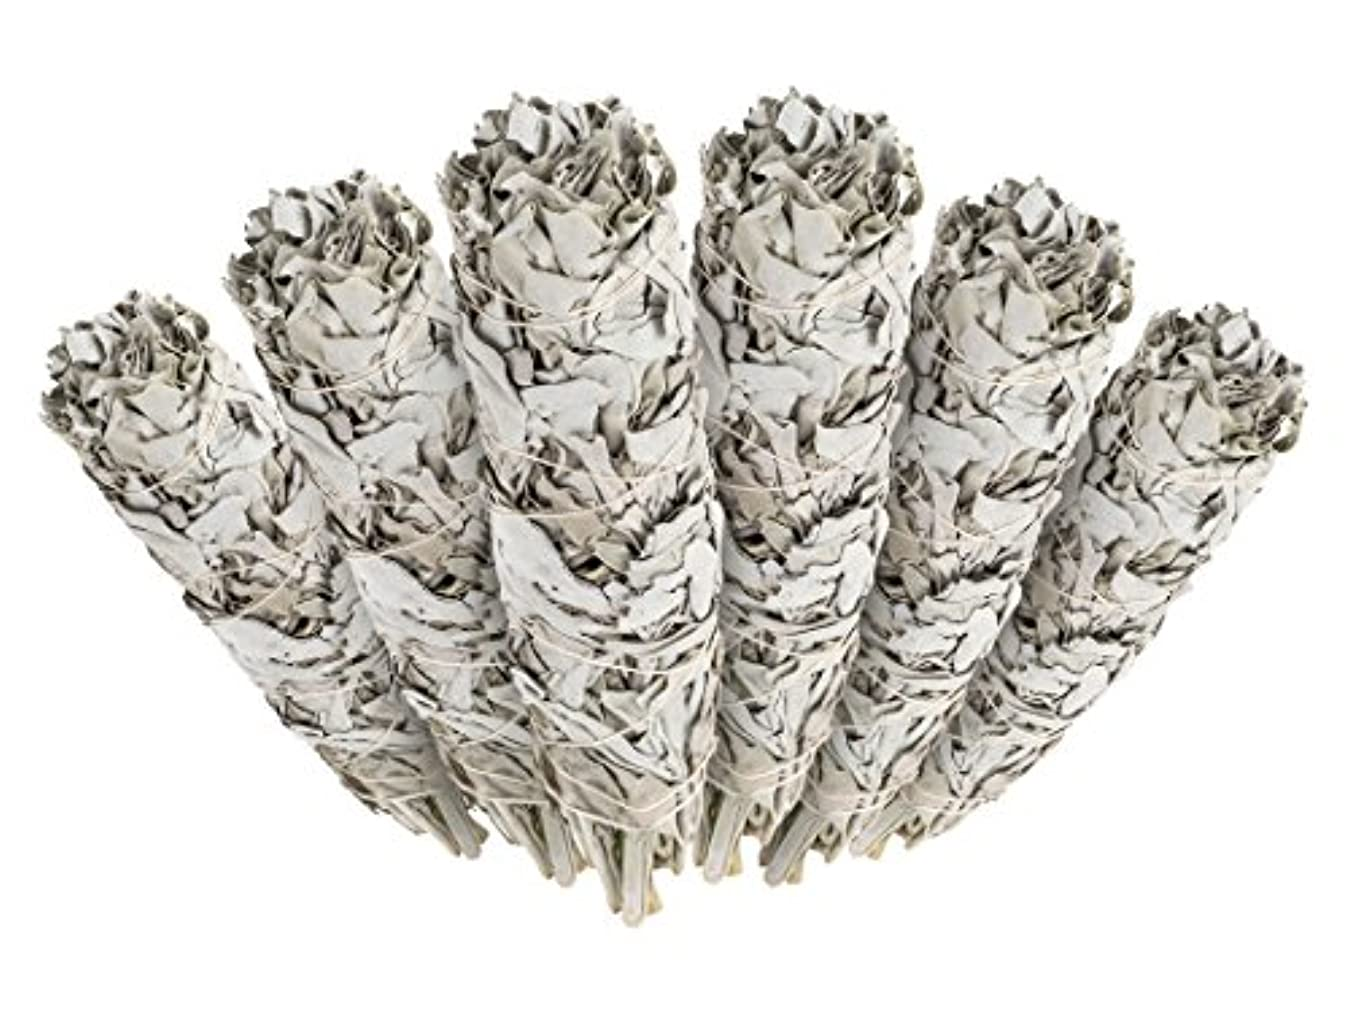 木製雄弁な健康的6 Pack - Premium California White Sage Smudge Sticks, Each Stick Approximately 10cm Long - Incense Garden Brand...